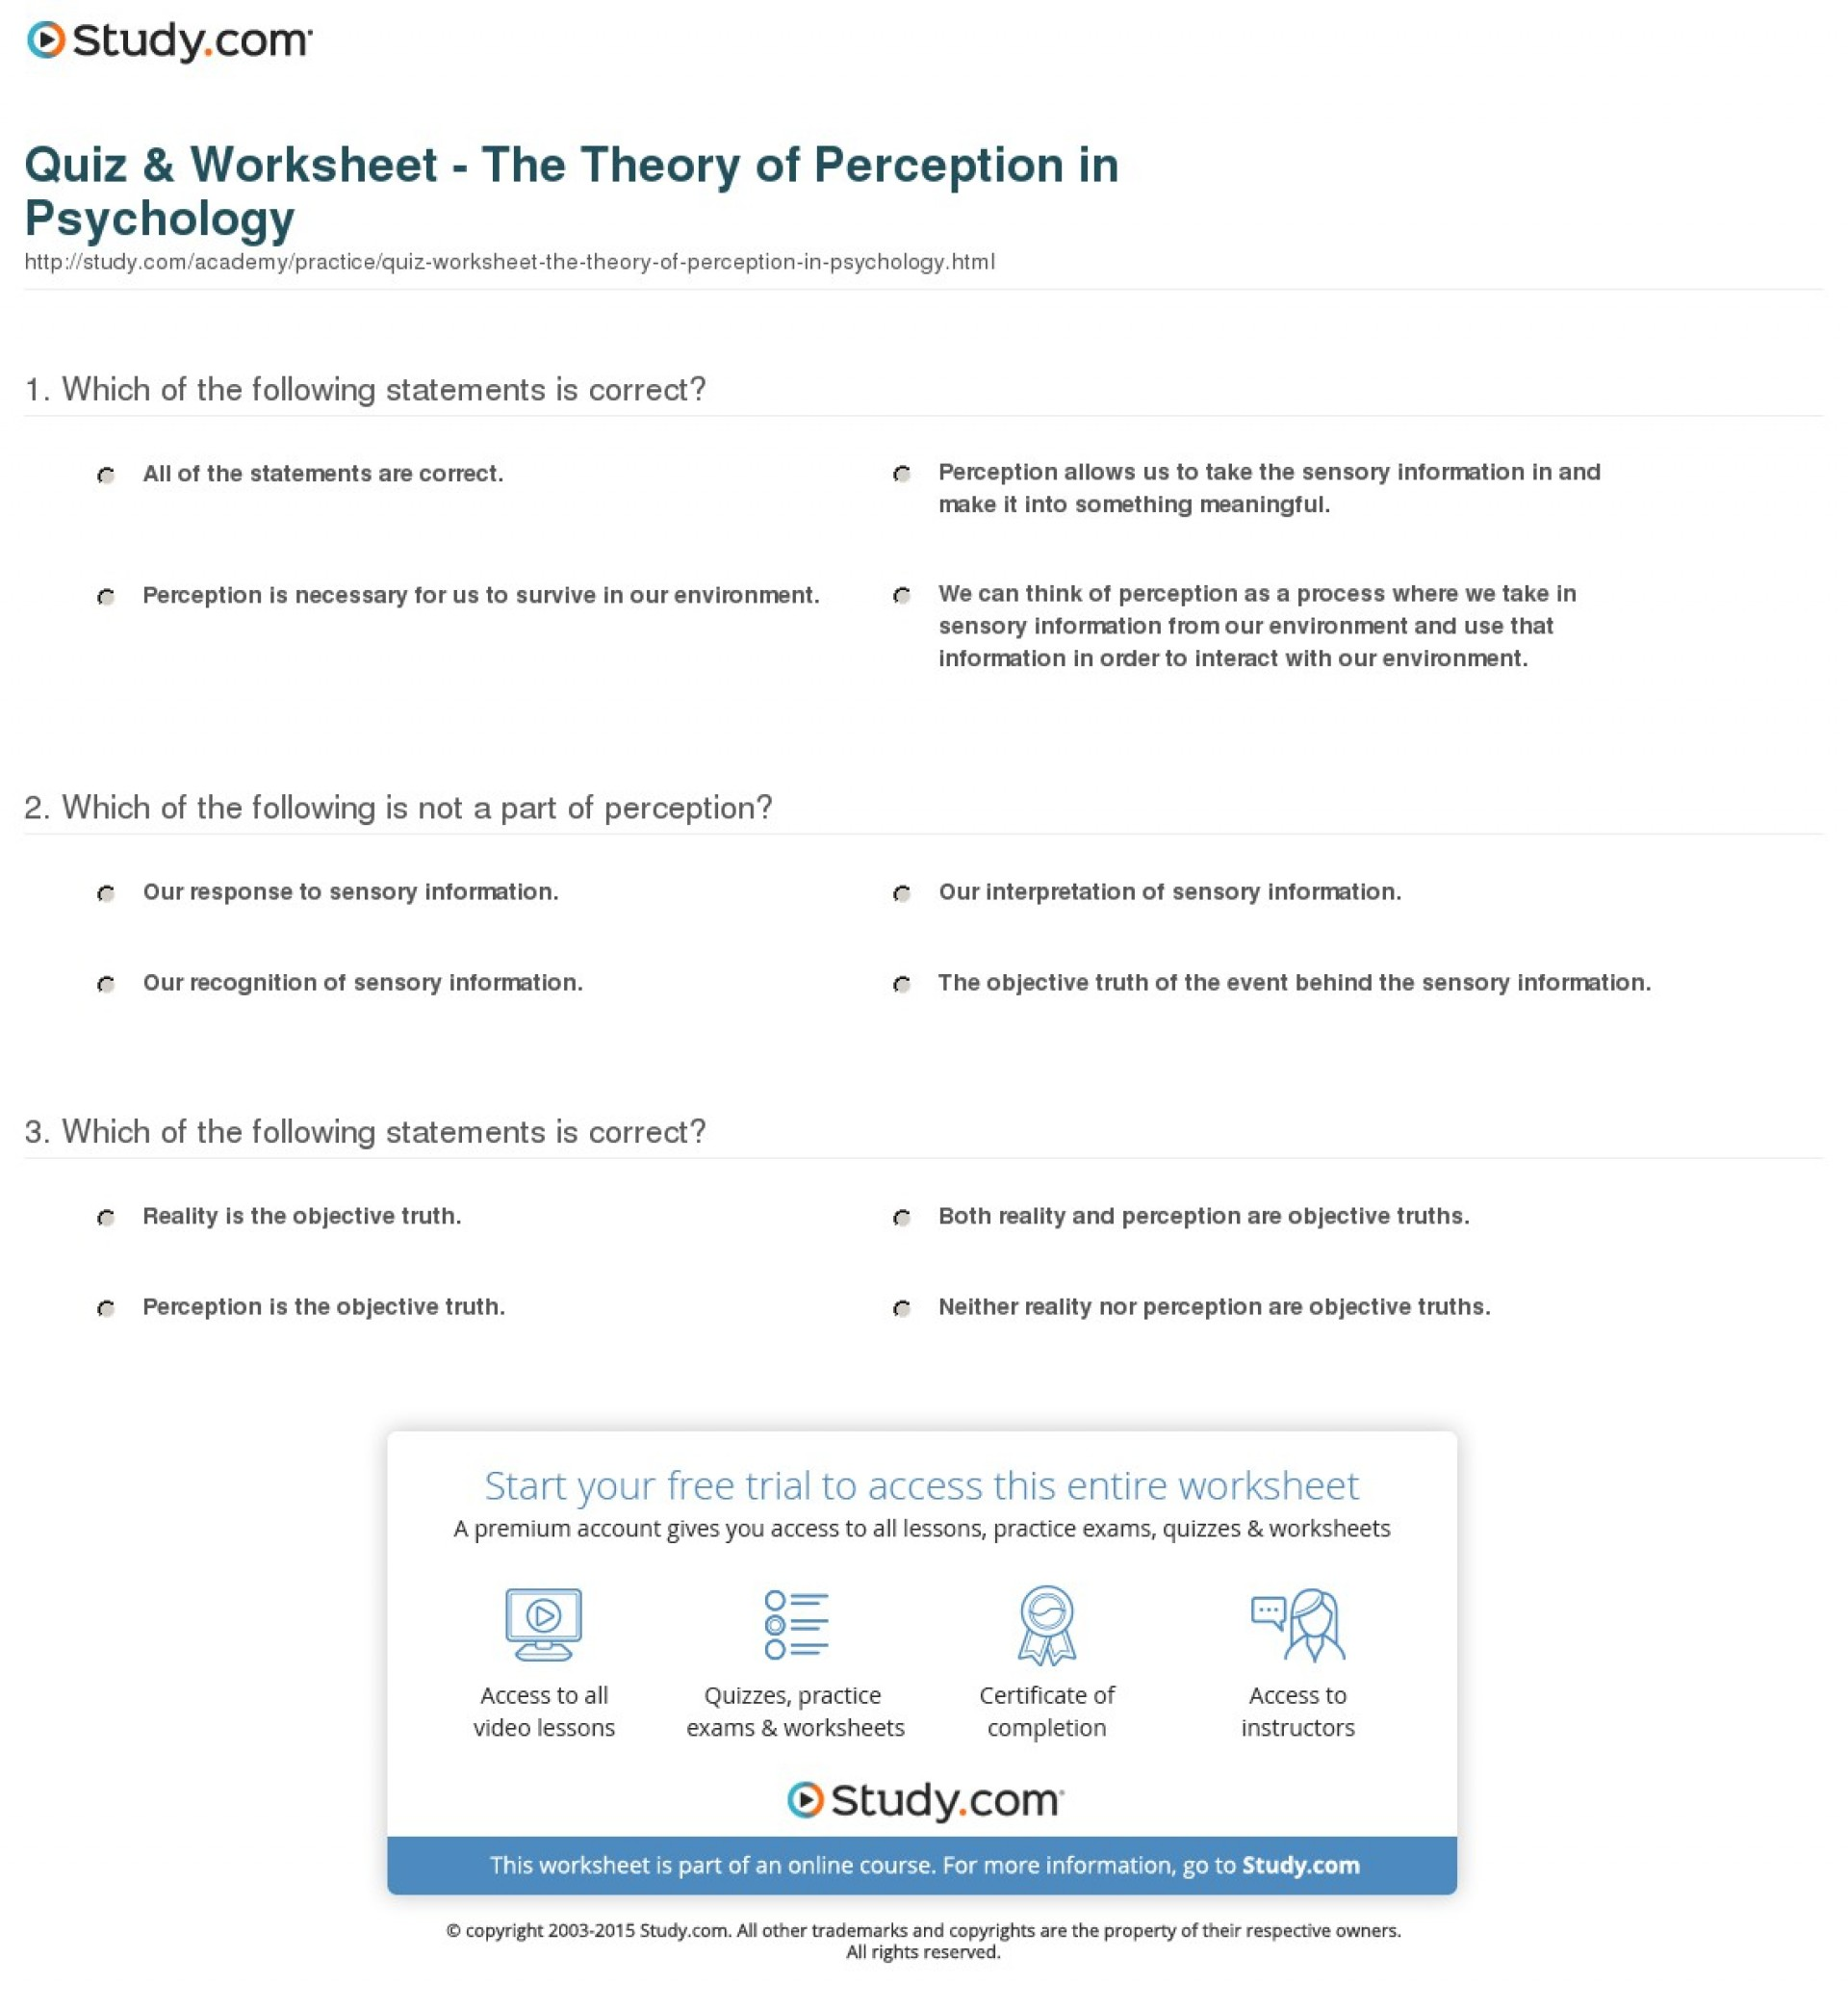 003 Perception Essay Quiz Worksheet The Theory Of In Psychology Formidable Questions Vs Reality Topics Sensation And 1920